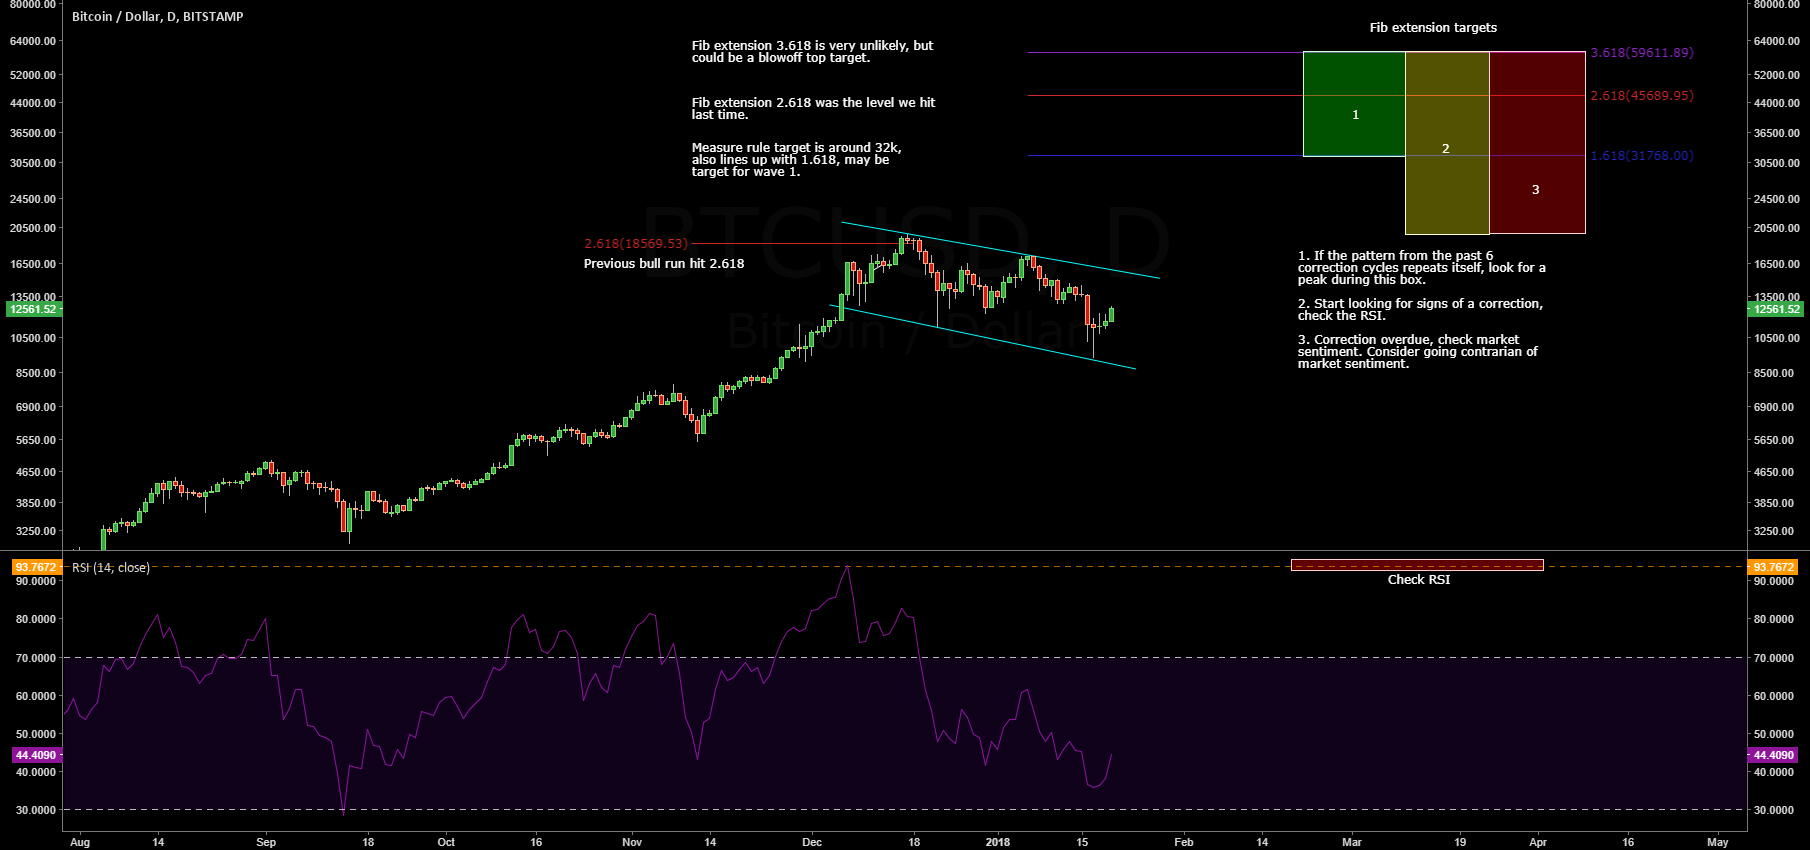 BTC's 7-10 week cycle just restarted.